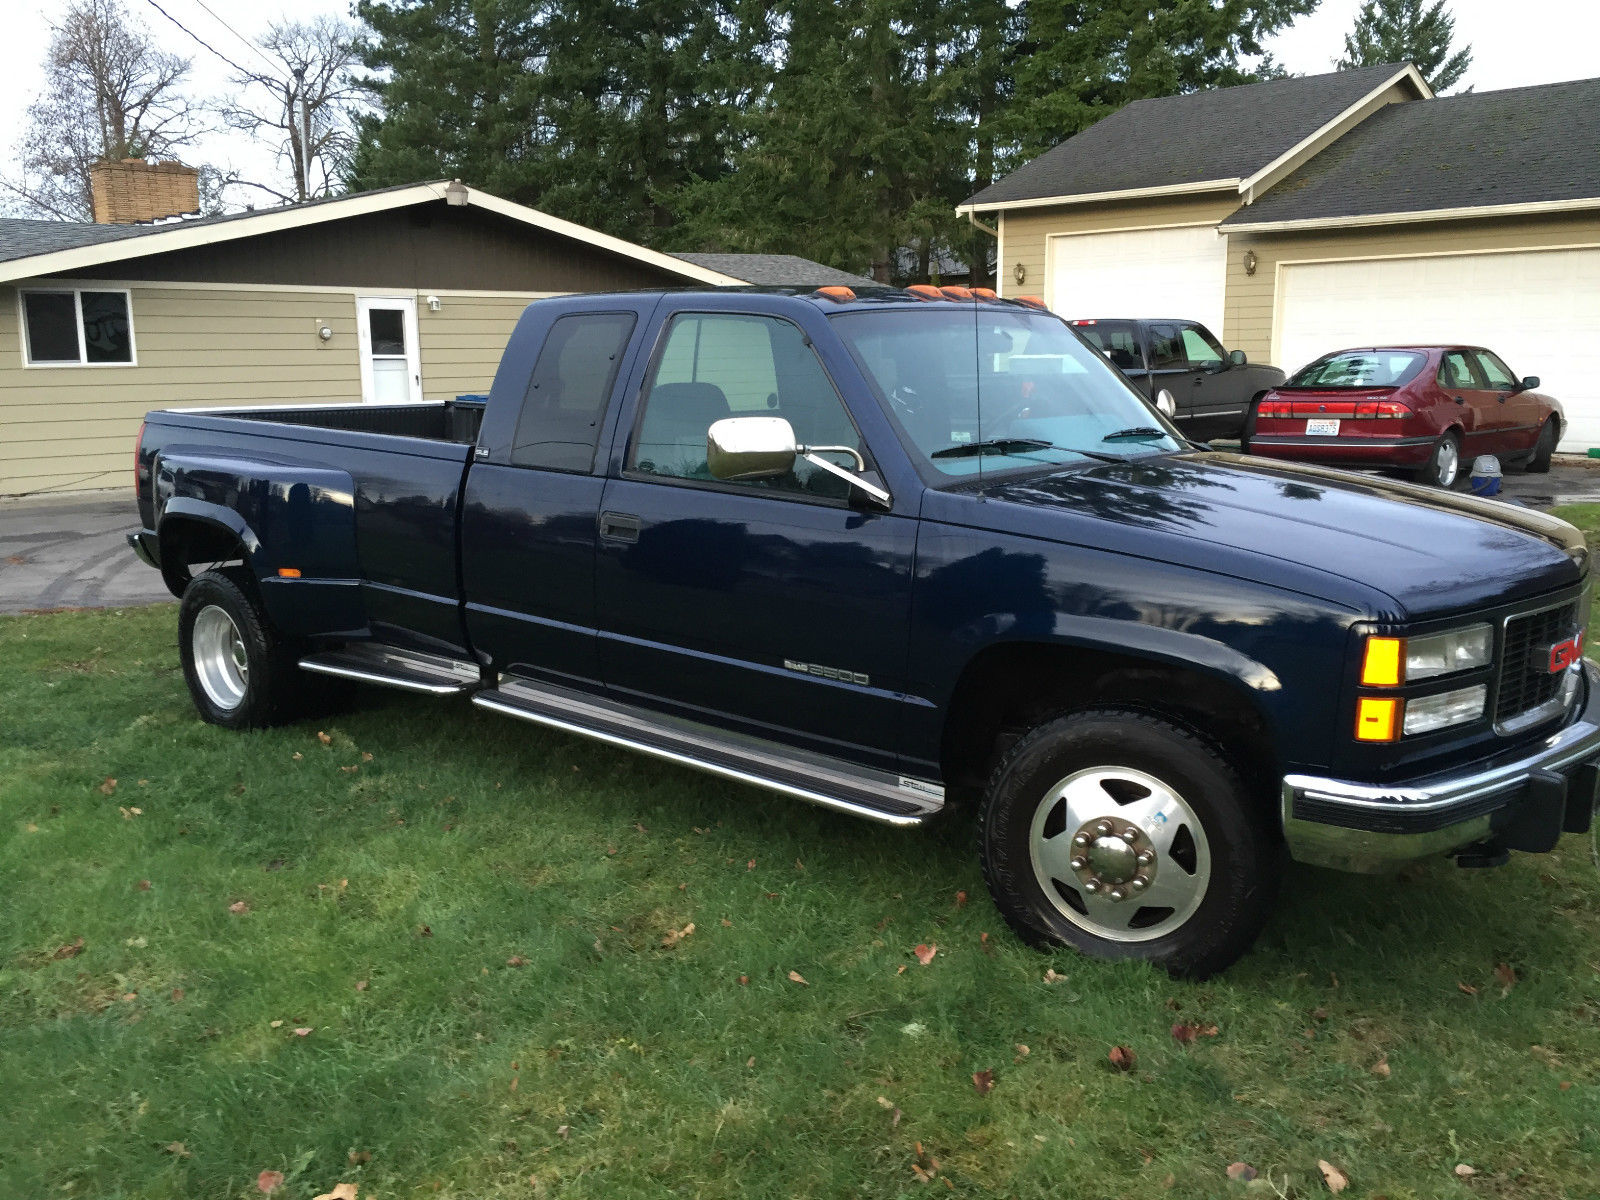 1994 gmc 3500 sle dually big block low miles for sale in kent washington united states. Black Bedroom Furniture Sets. Home Design Ideas